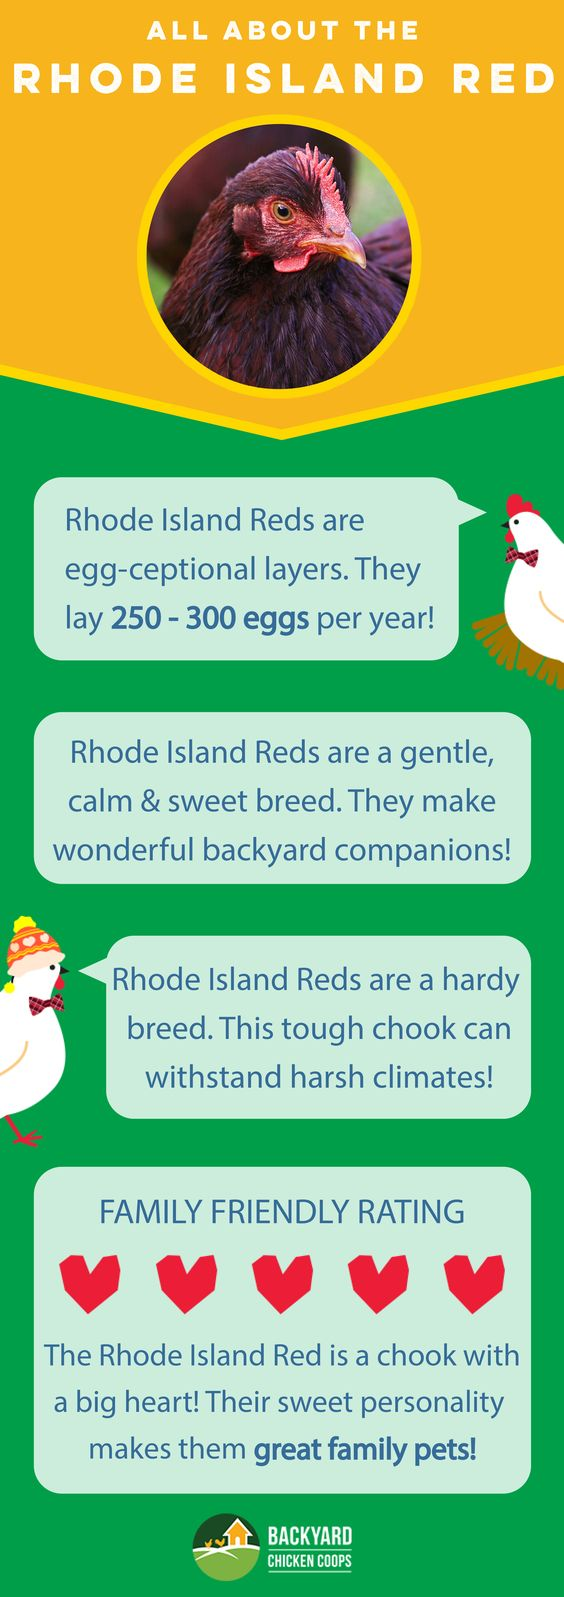 All About The Rhode Island Red